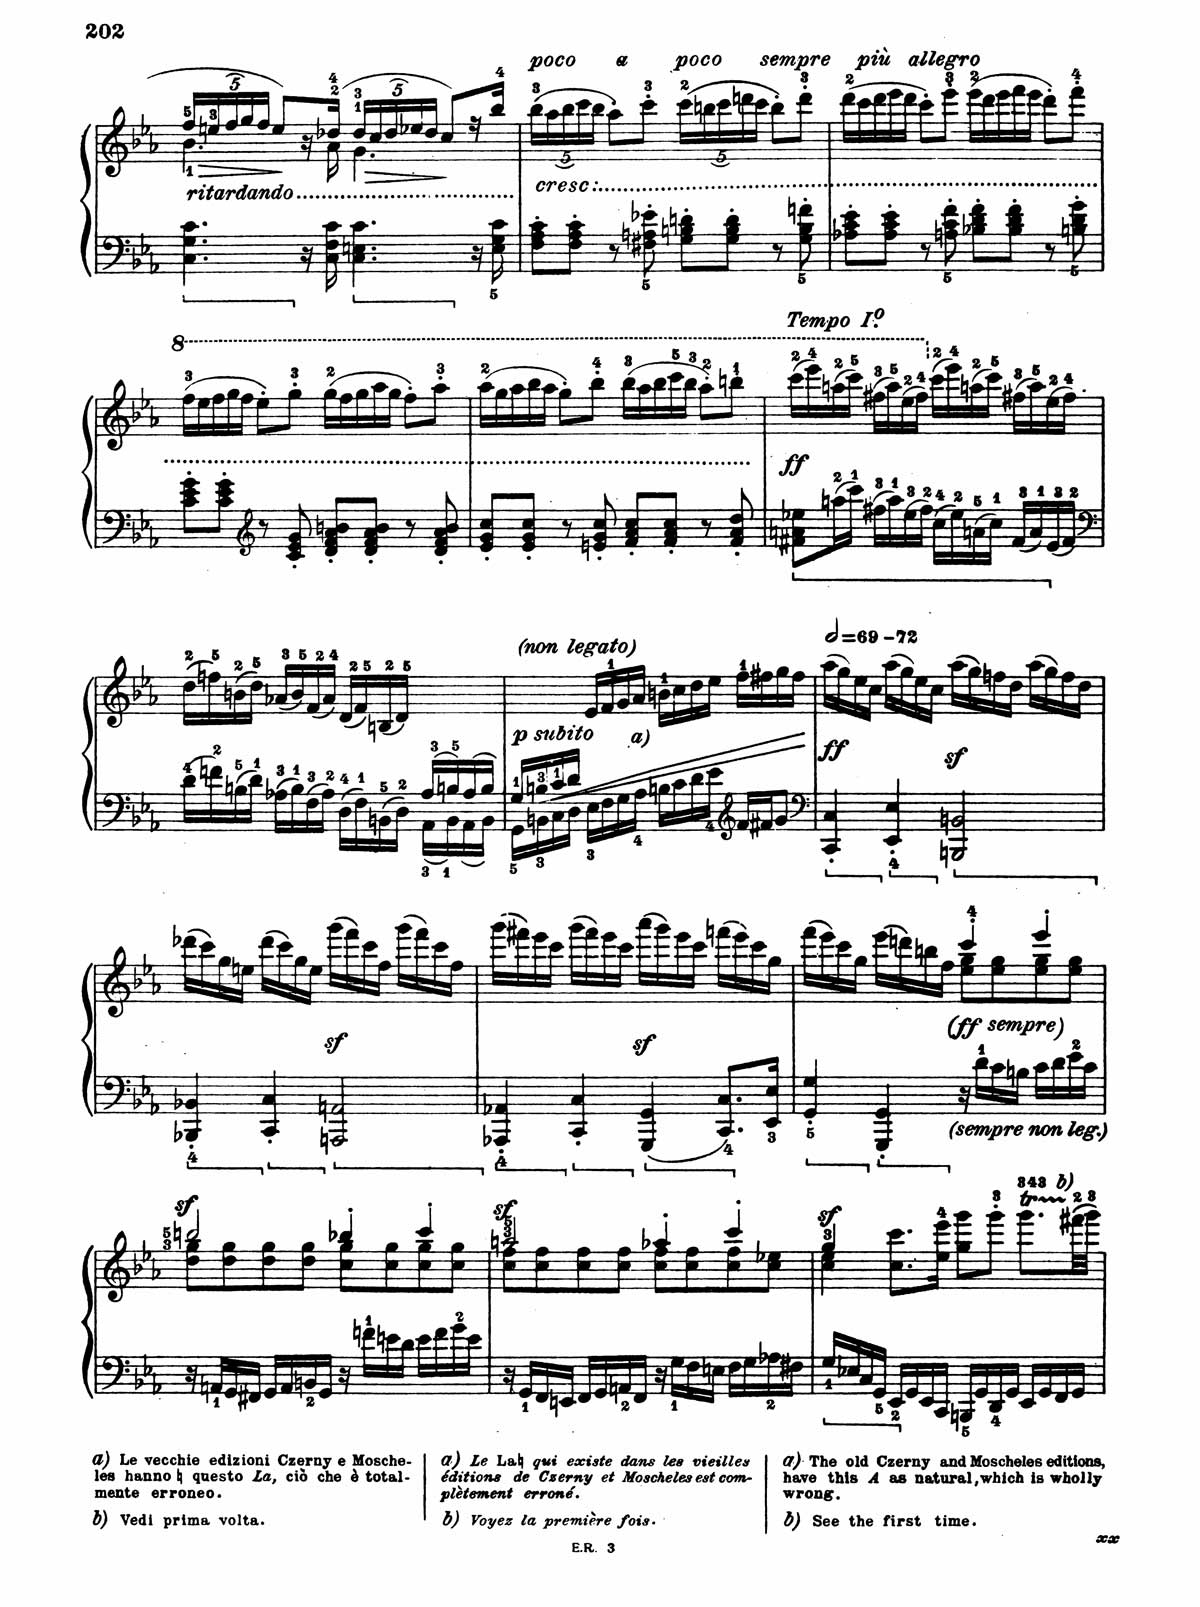 Beethoven Piano Sonata 32-10 sheet music